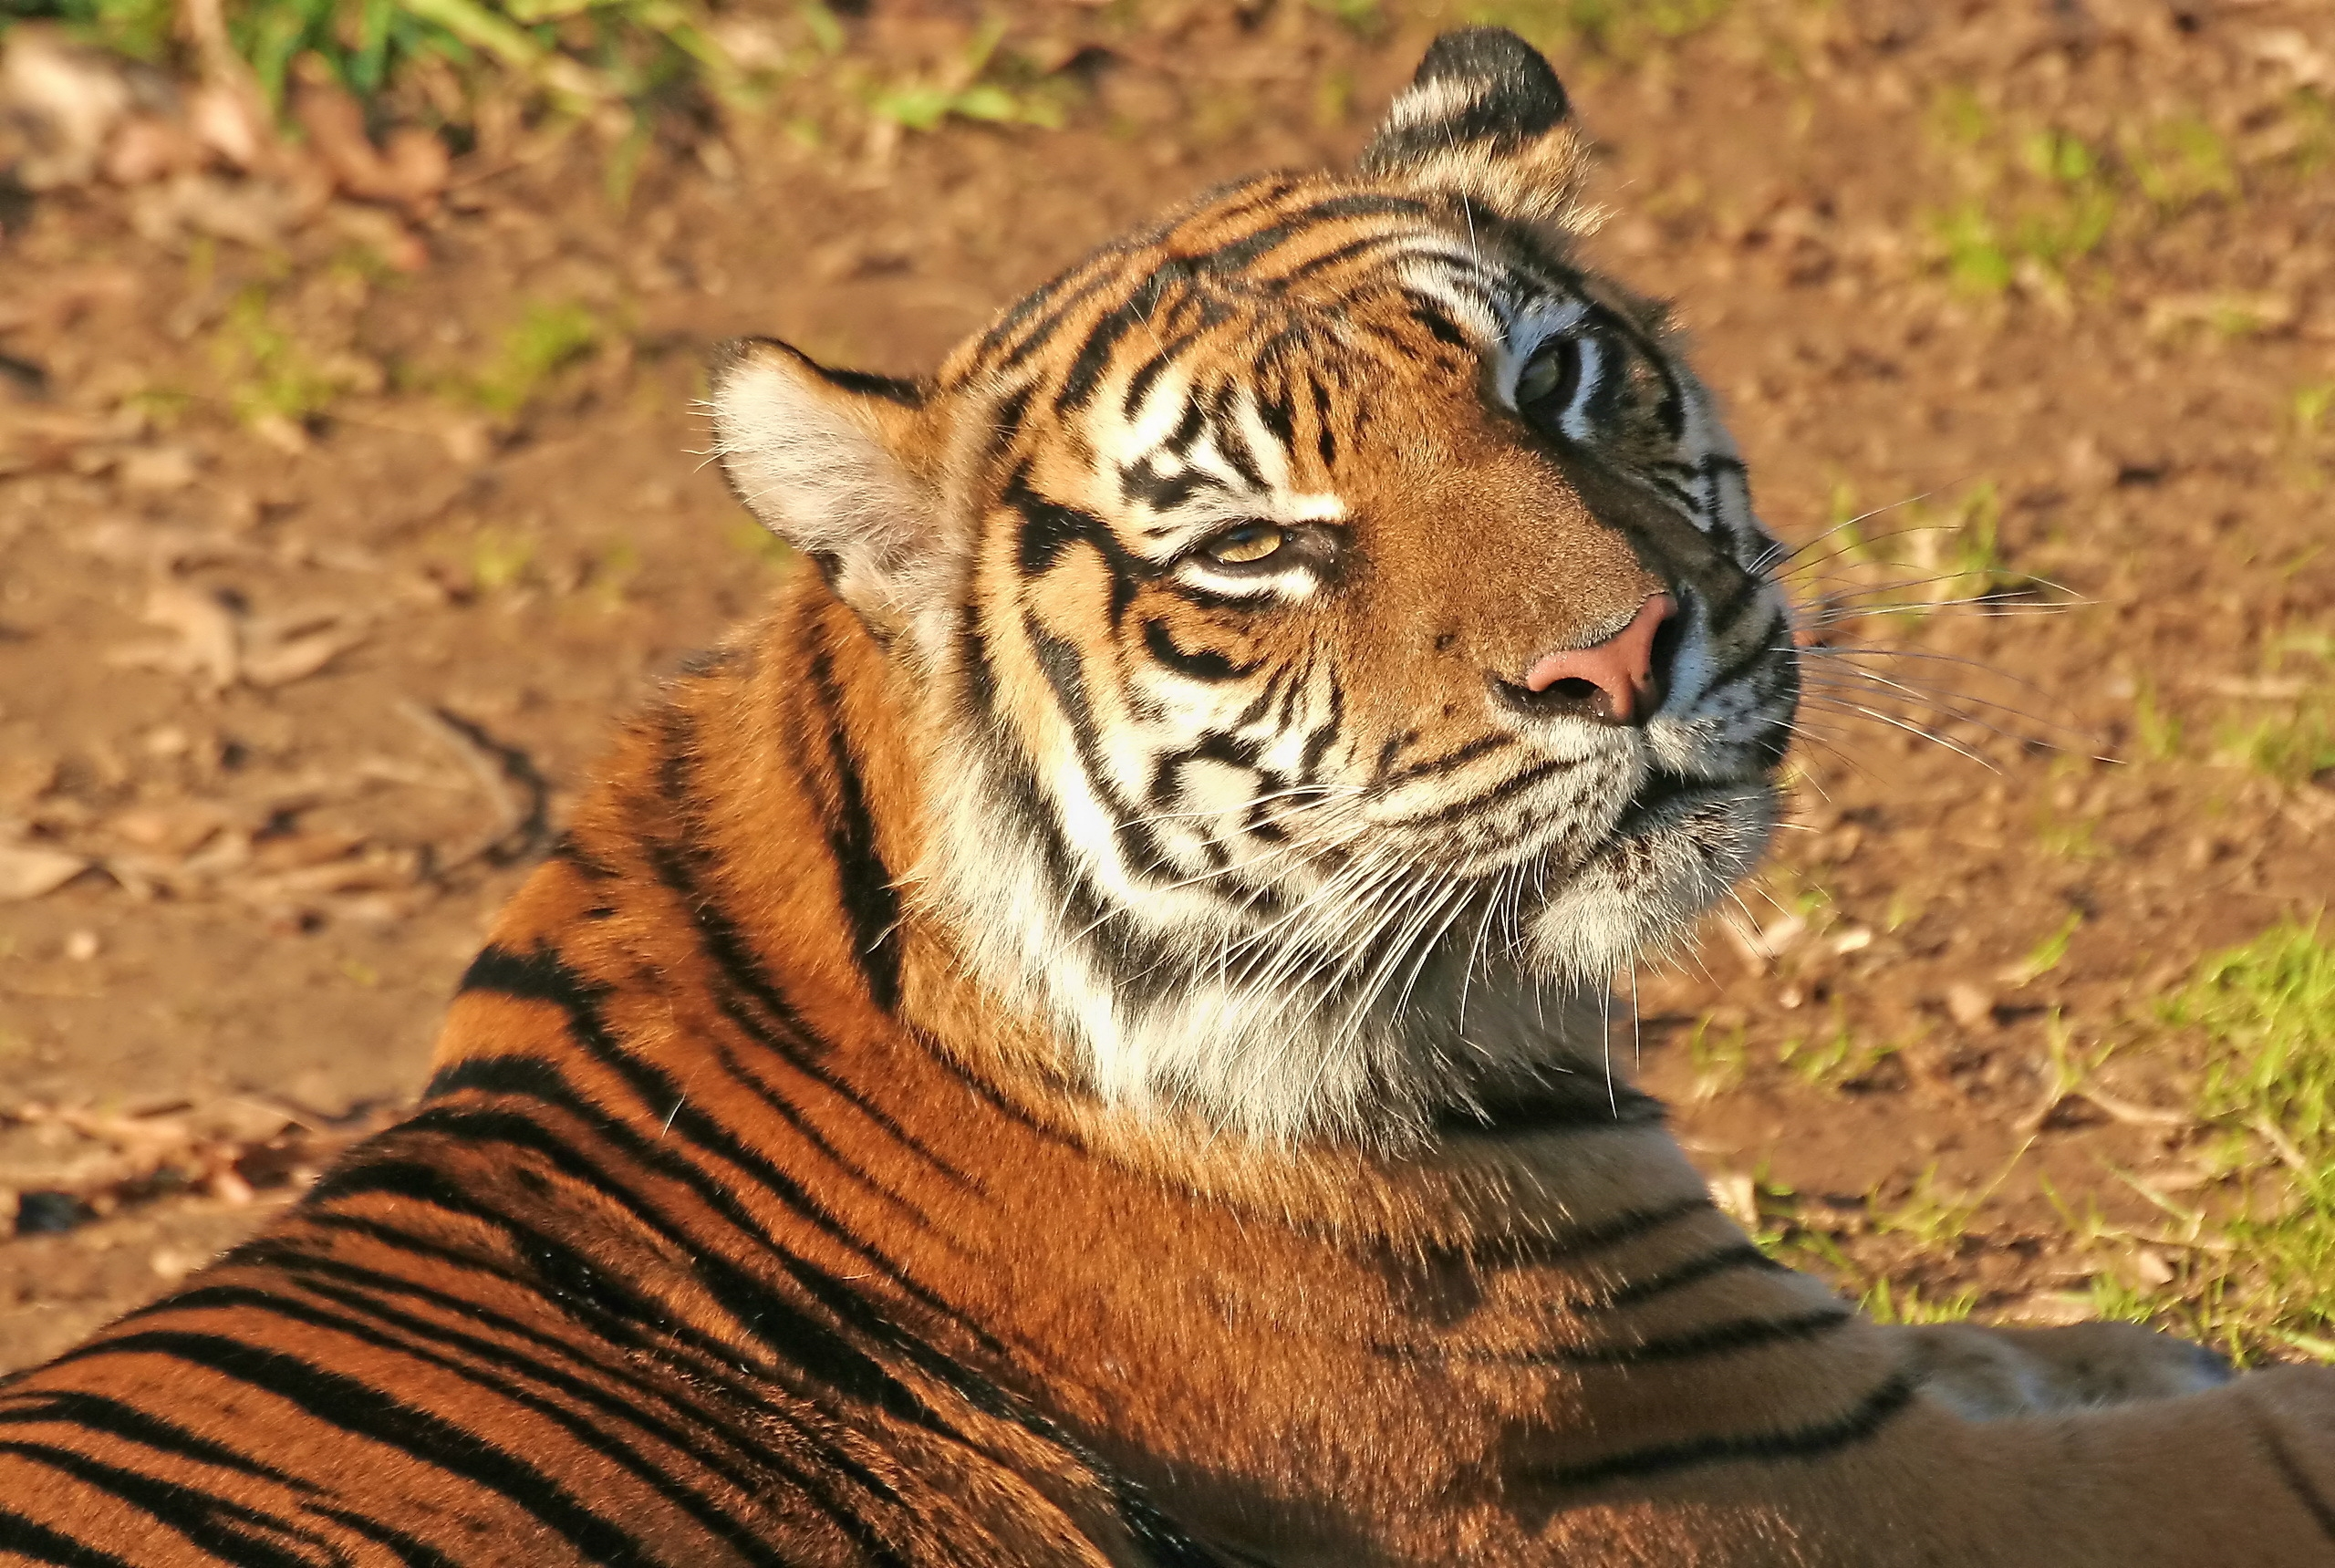 76285 download wallpaper Animals, Tiger, Muzzle, Striped, Predator screensavers and pictures for free